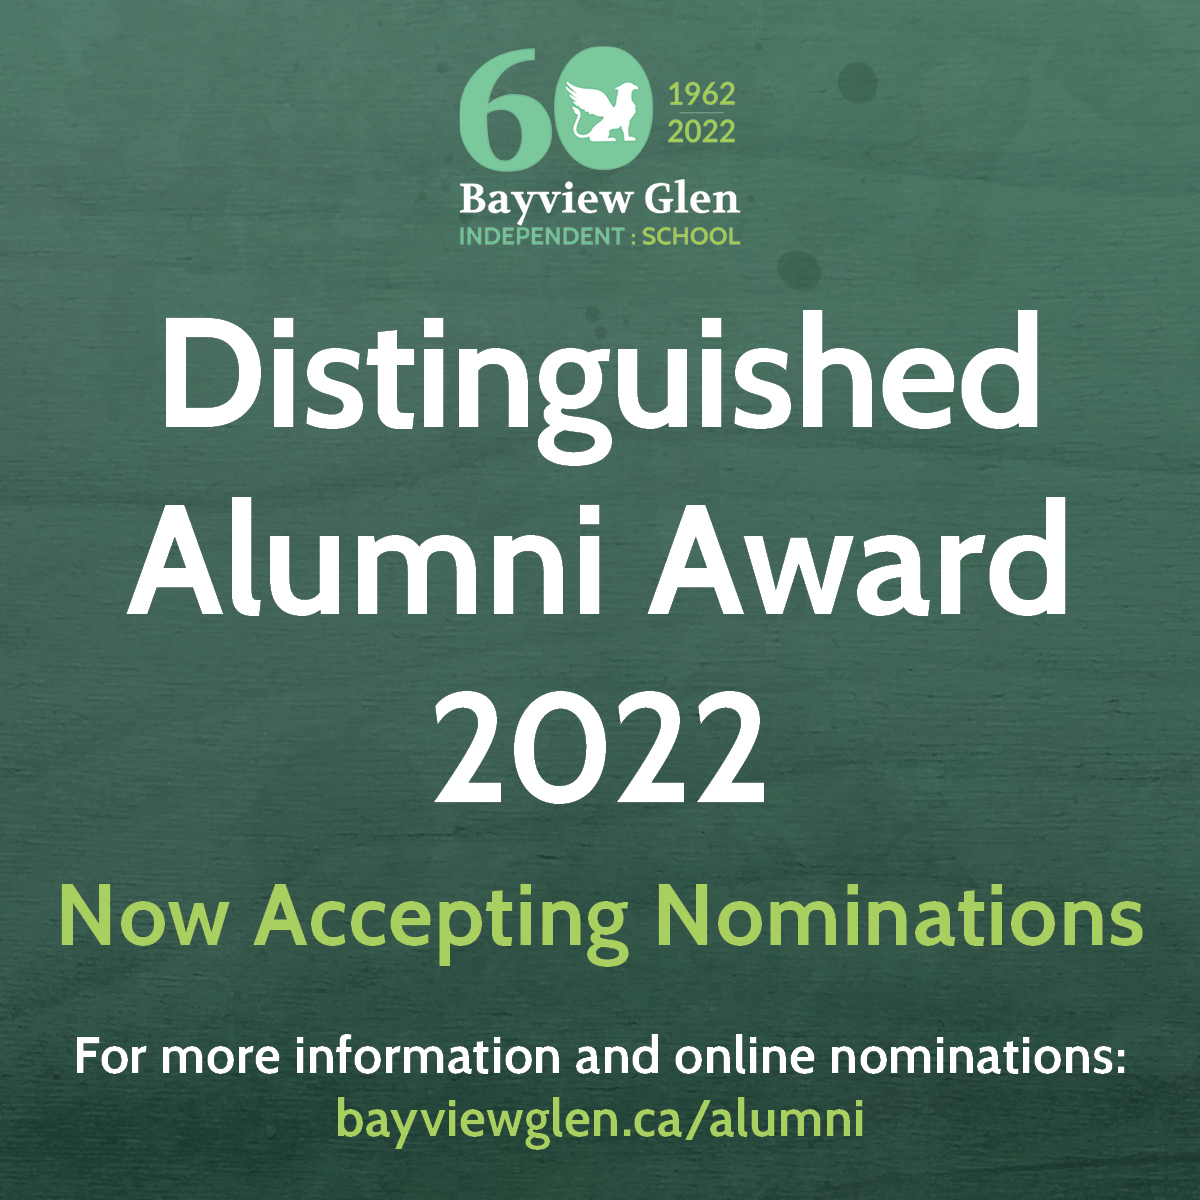 BVG Distinguished Alumni Award 2022 Now Accepting Nominations